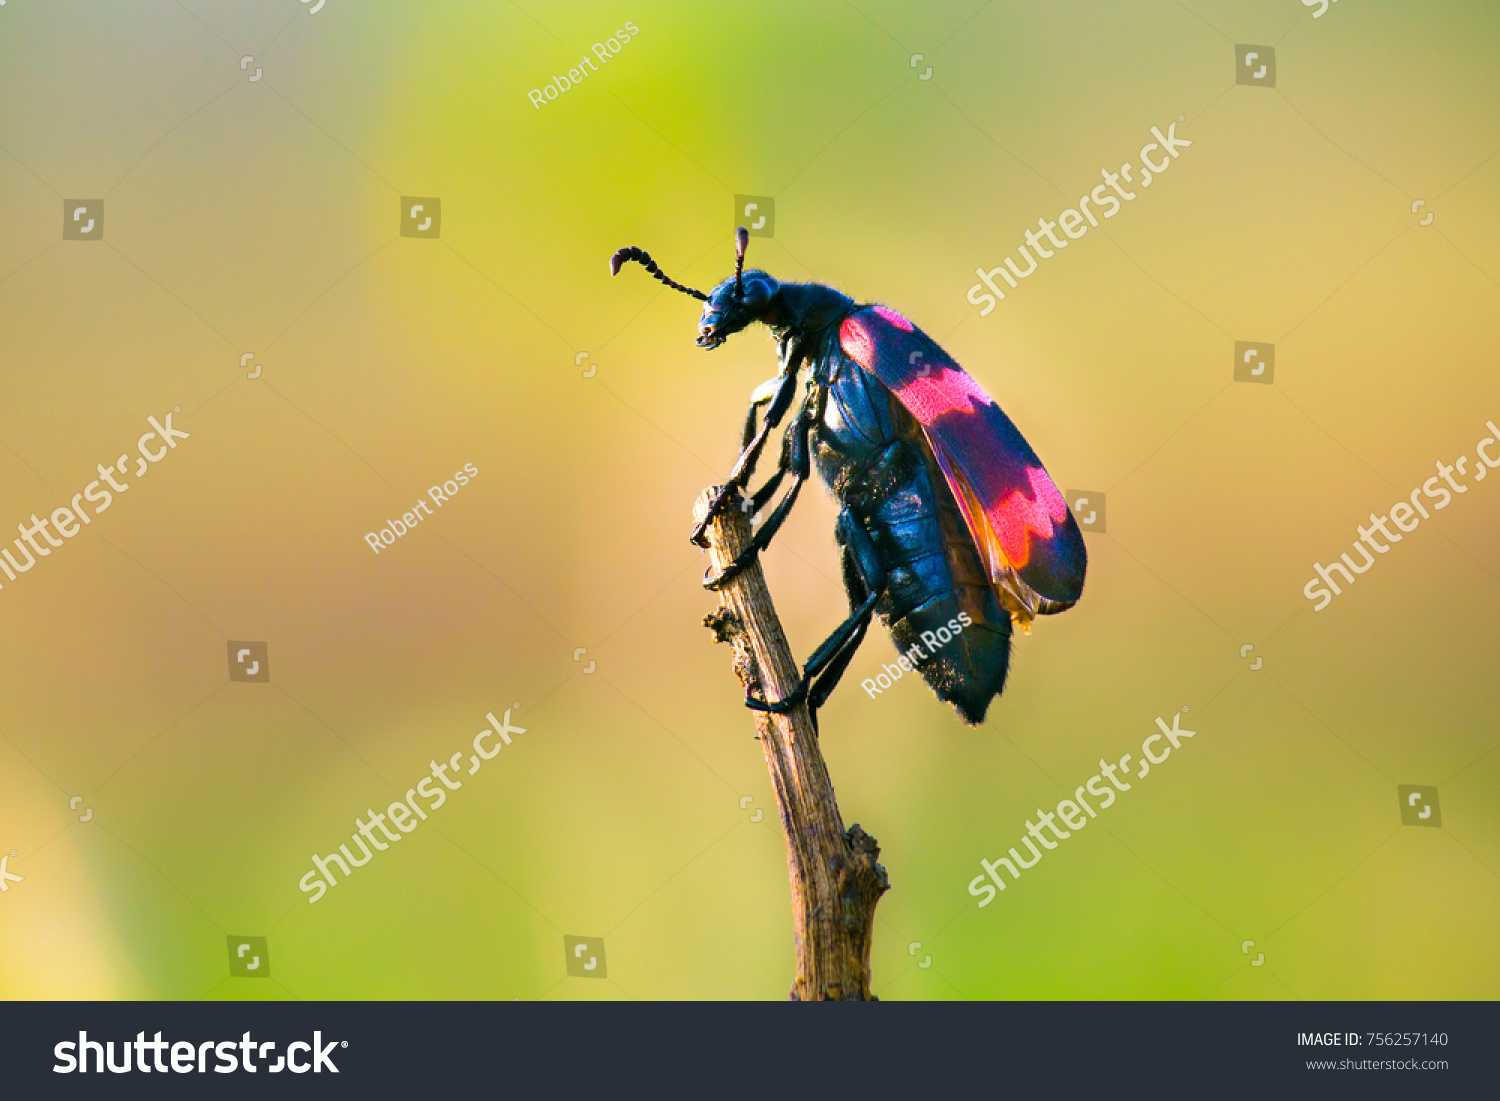 Beetles are a group of insects that form order Coleoptera, in the superorder Endopterygota. Their front pair of wings is hardened into wing-cases, elytra, distinguishing them from most other insects #756257140